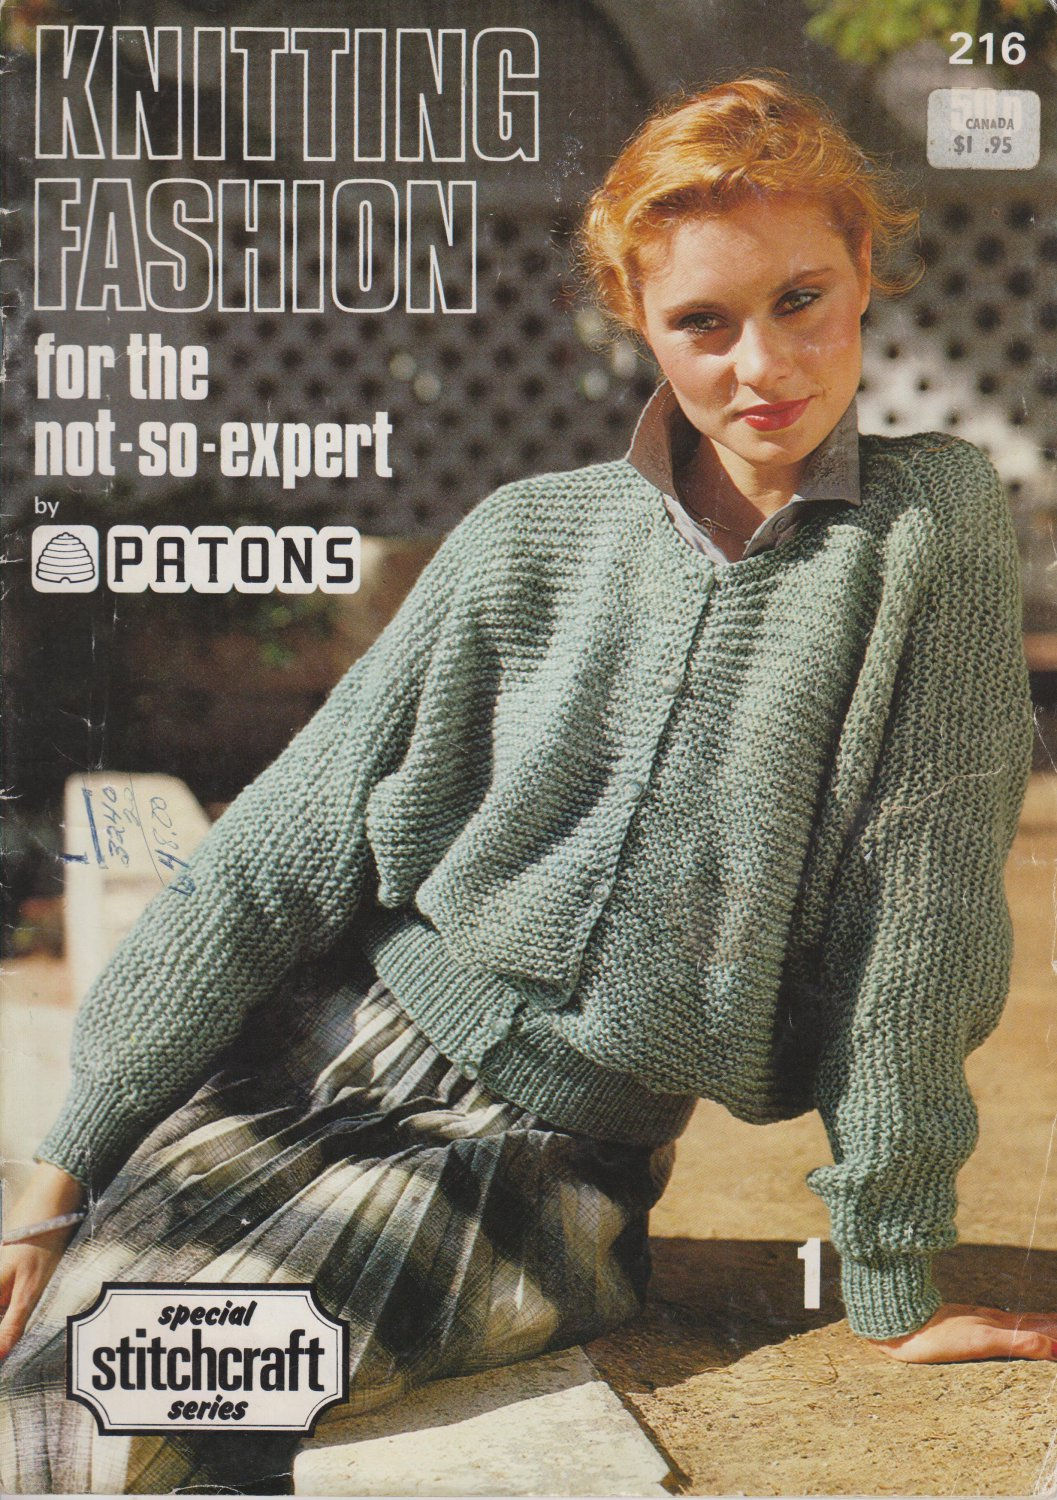 Patons Knitting Fashion 1979 Pattern Booklet #216